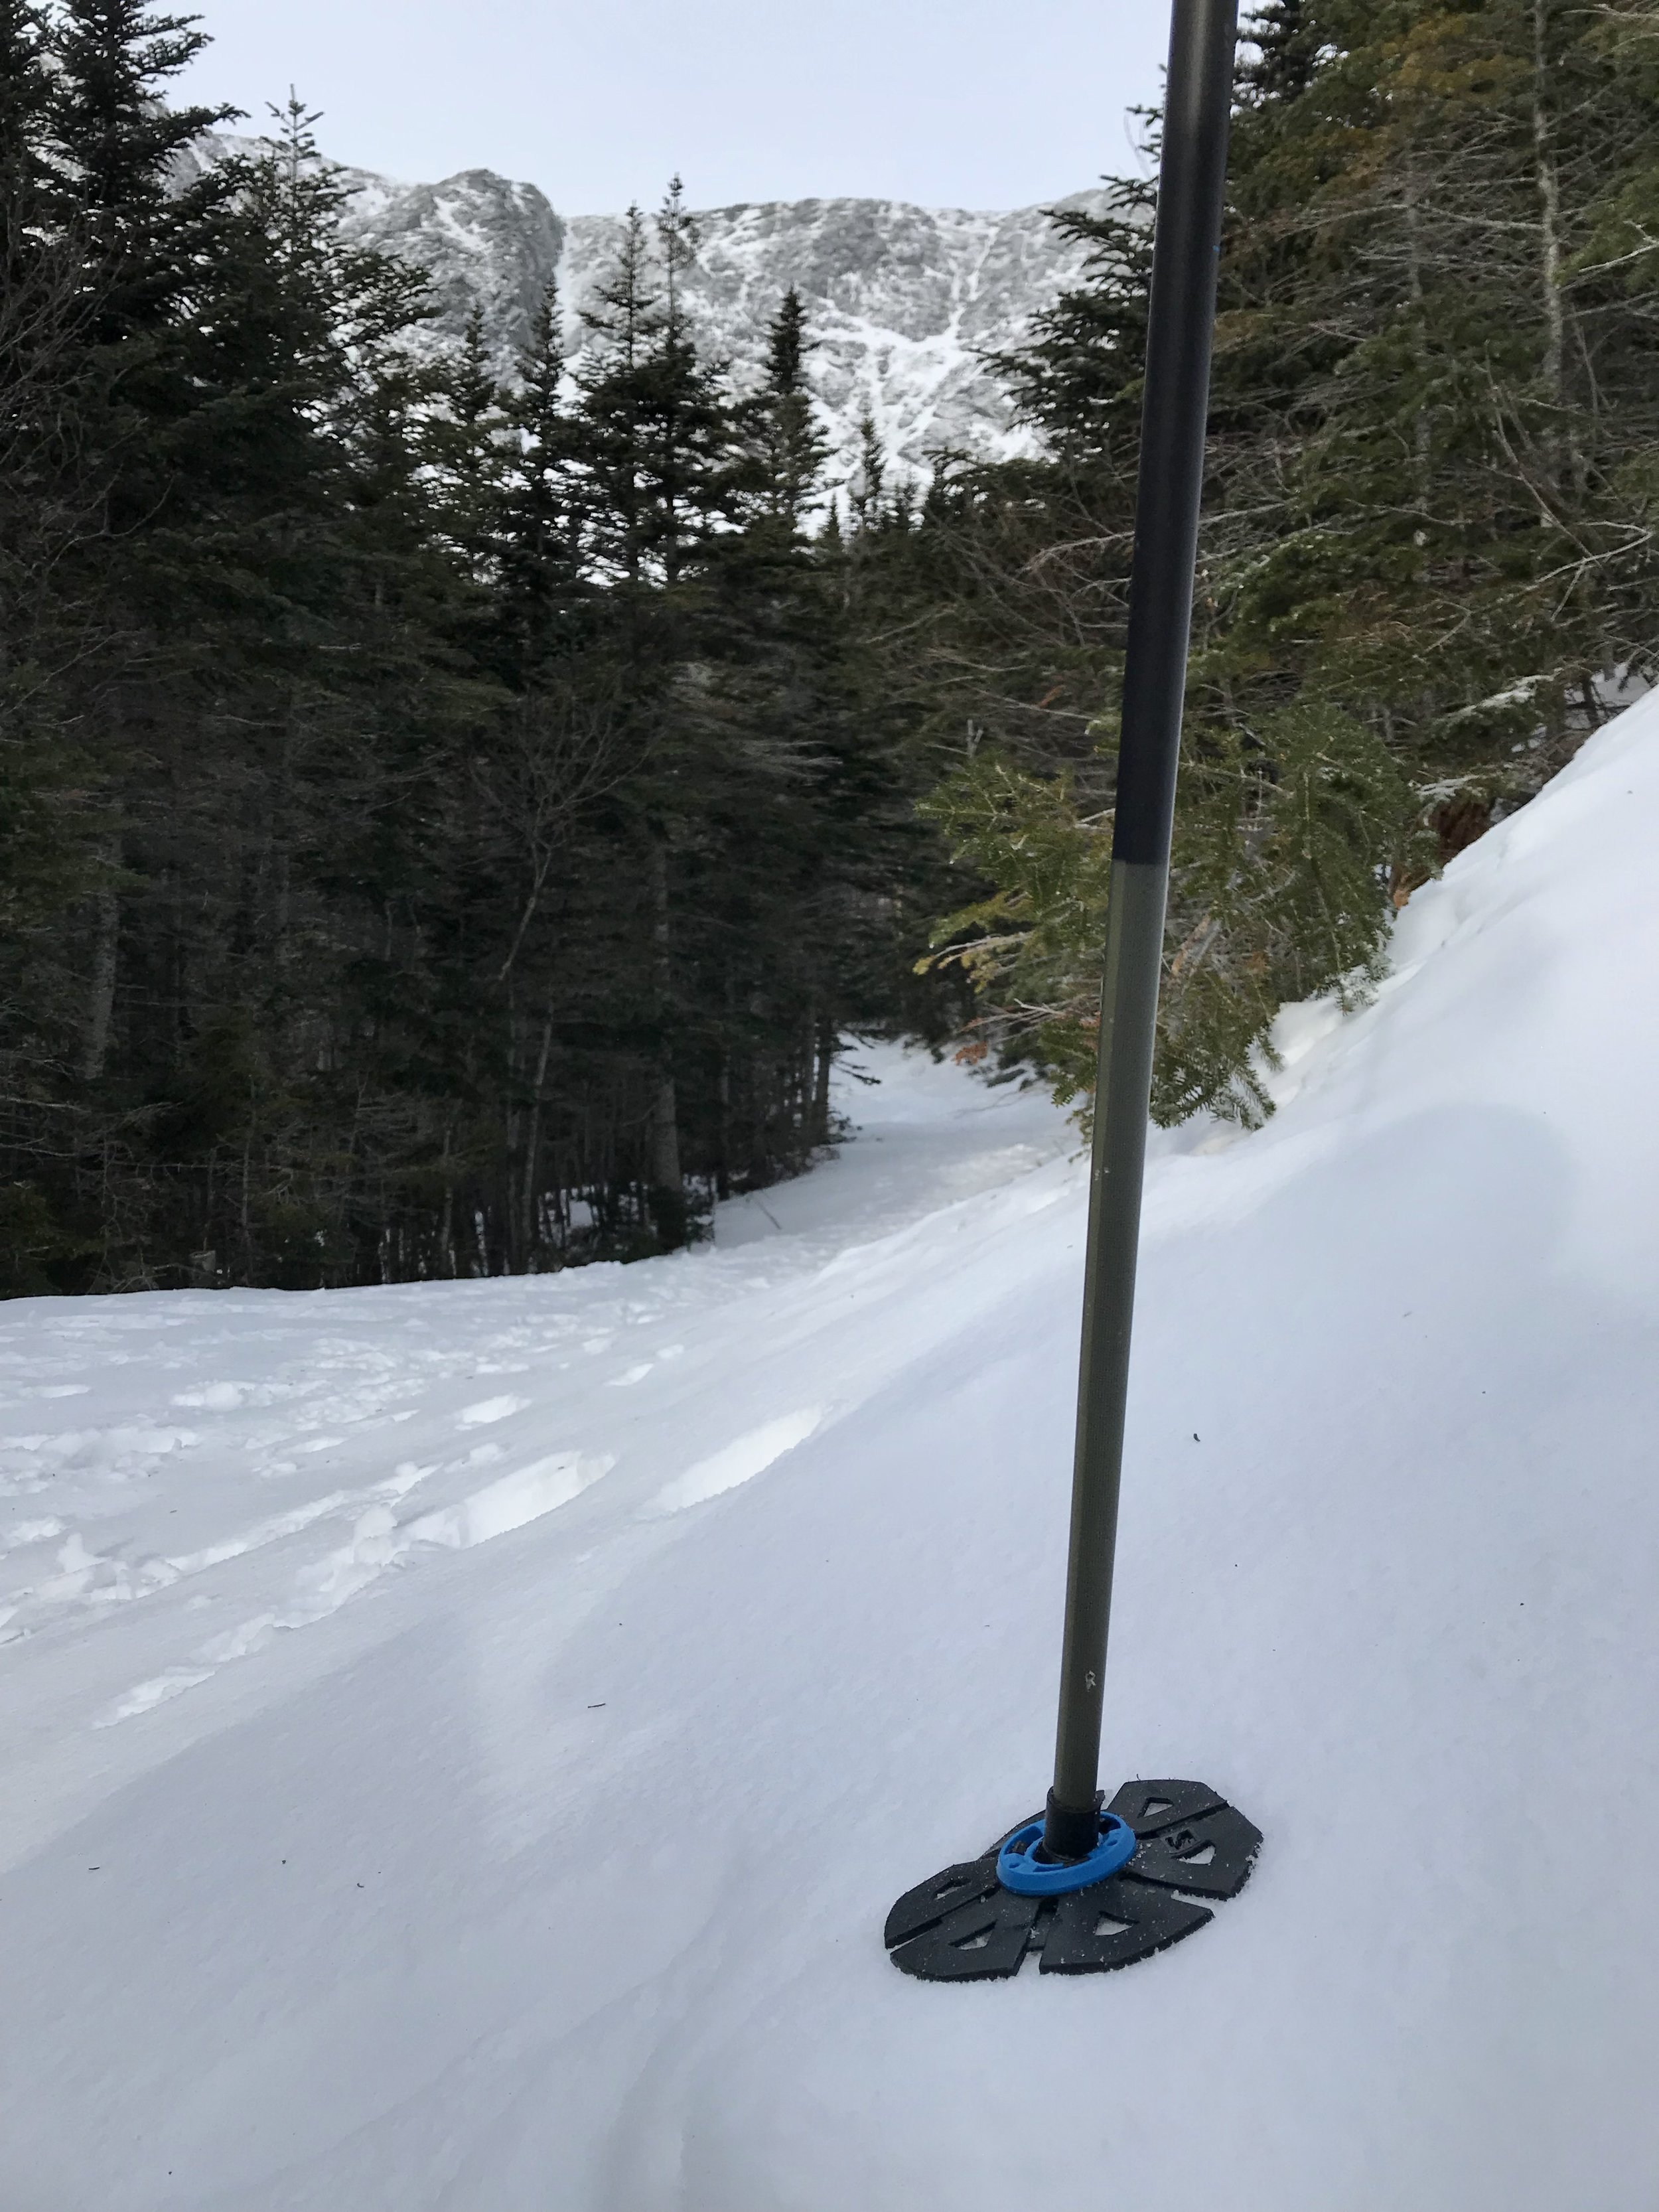 Even on firm snow the basket moves around to allow you to plunge the pole tip as deep as possible.